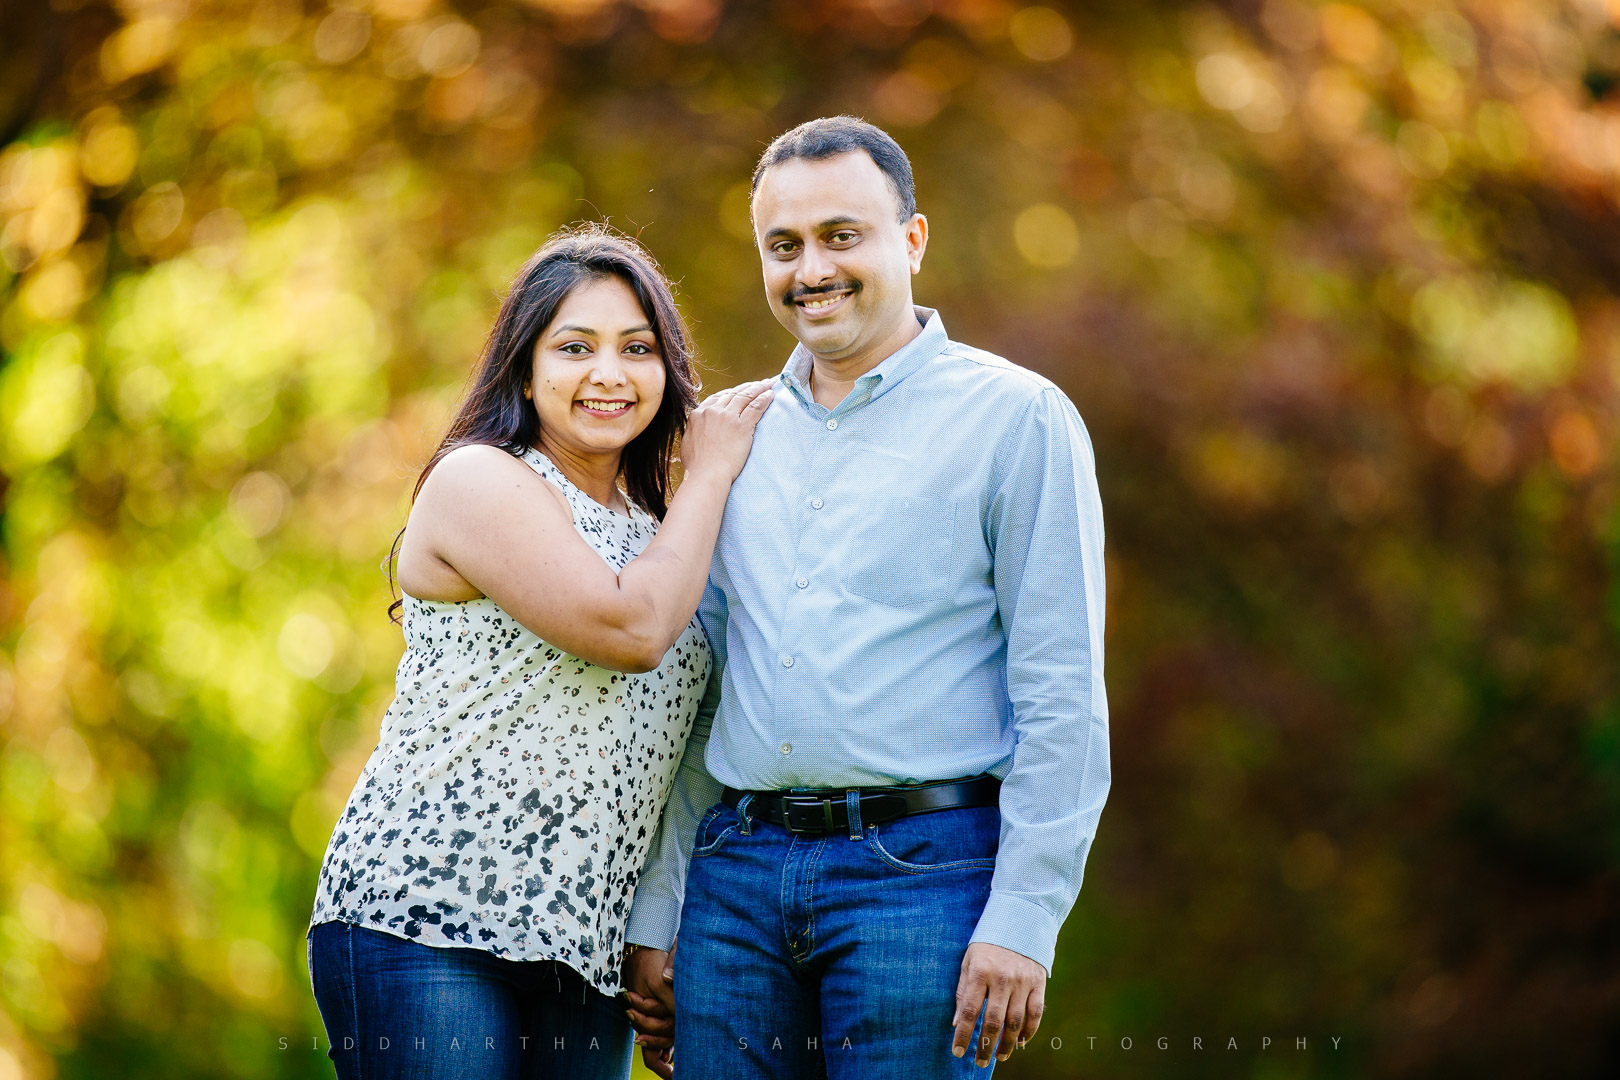 2015-05-03 - Vandana Family Shoot - _05Y1248